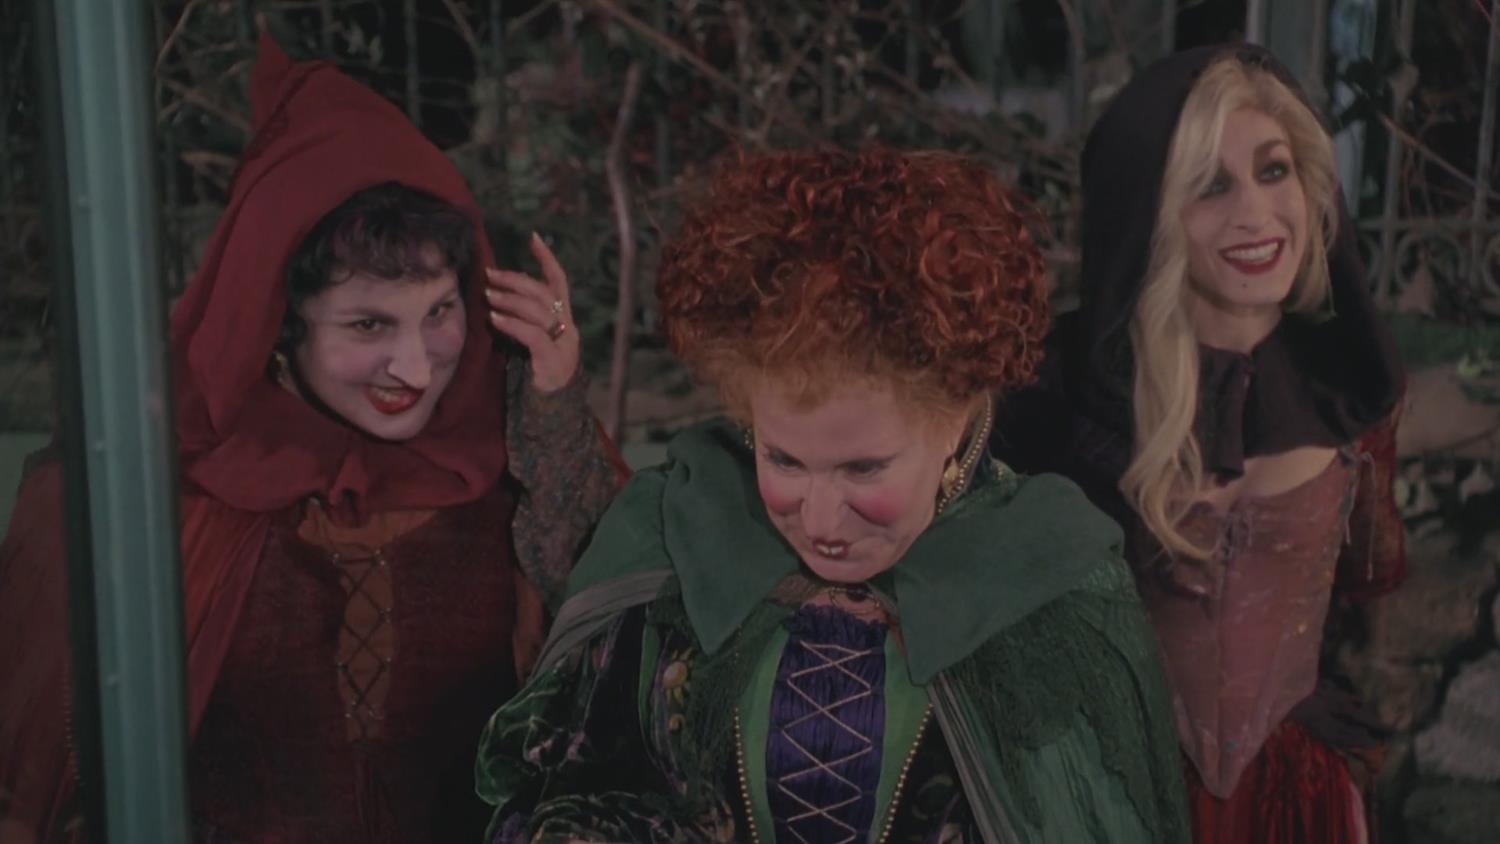 12 Things We Noticed While Watching Hocus Pocus